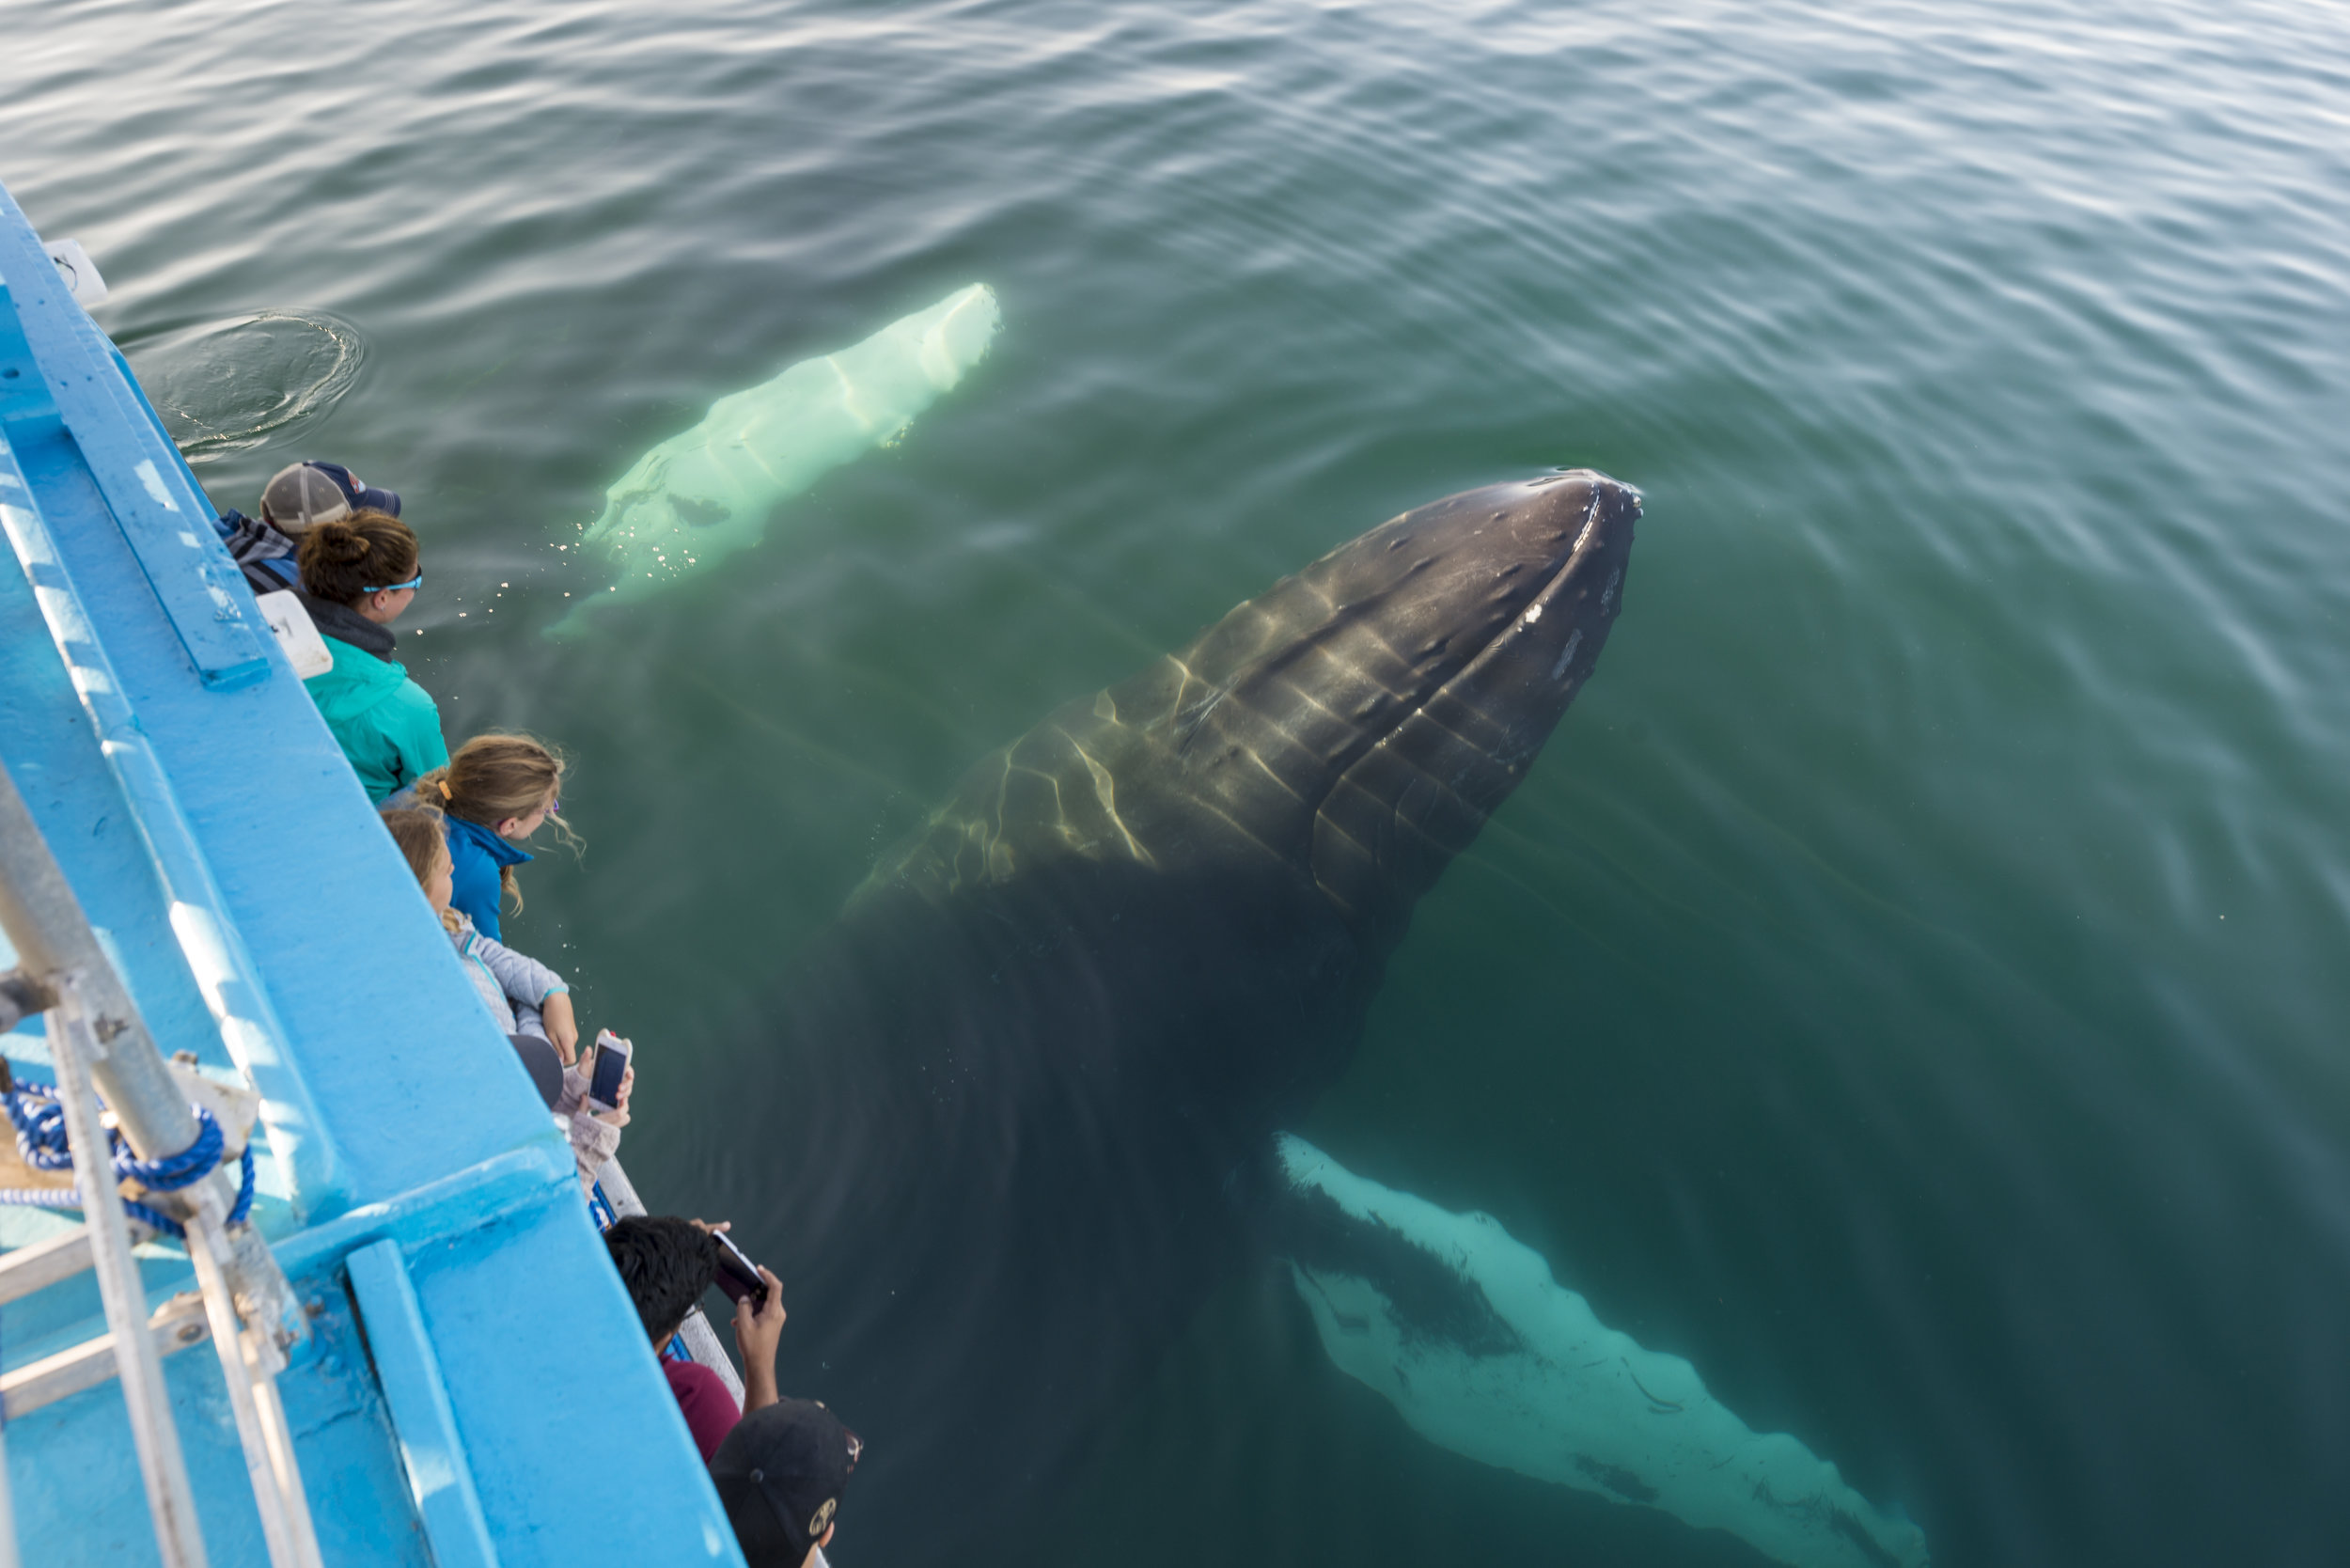 2 Humpback whales swim out from under the boat of the Chad Sisters Vessel